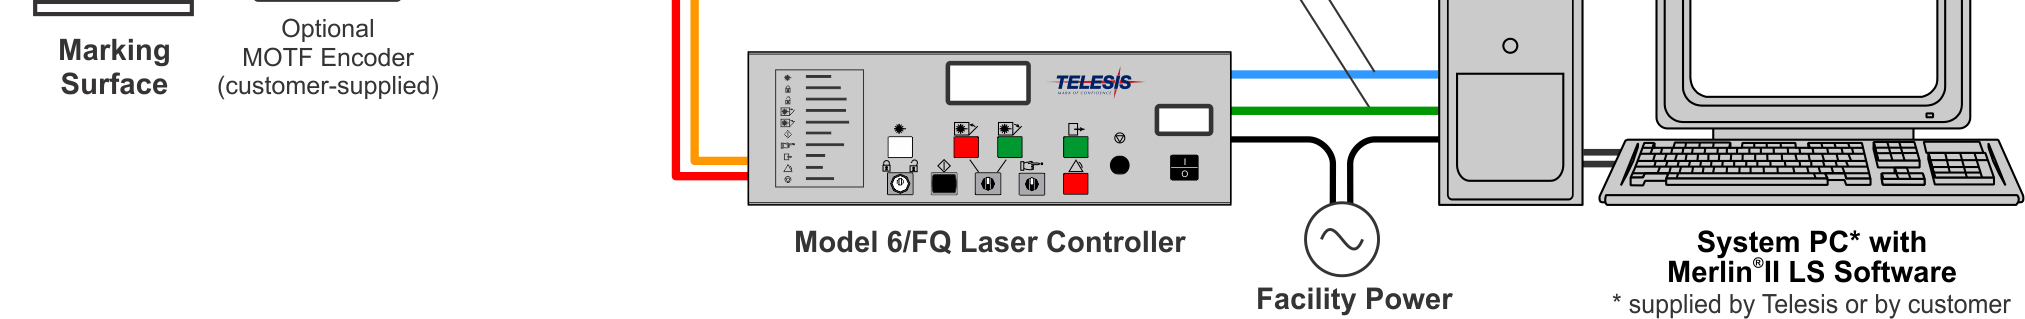 FQ30 Laser Marking System General Arrangement SYSTEM OVERVIEW The Telesis FQ30 is one laser in a family of maintenance-free, Q-switched, Ytterbium fiber lasers designed for marking applications.